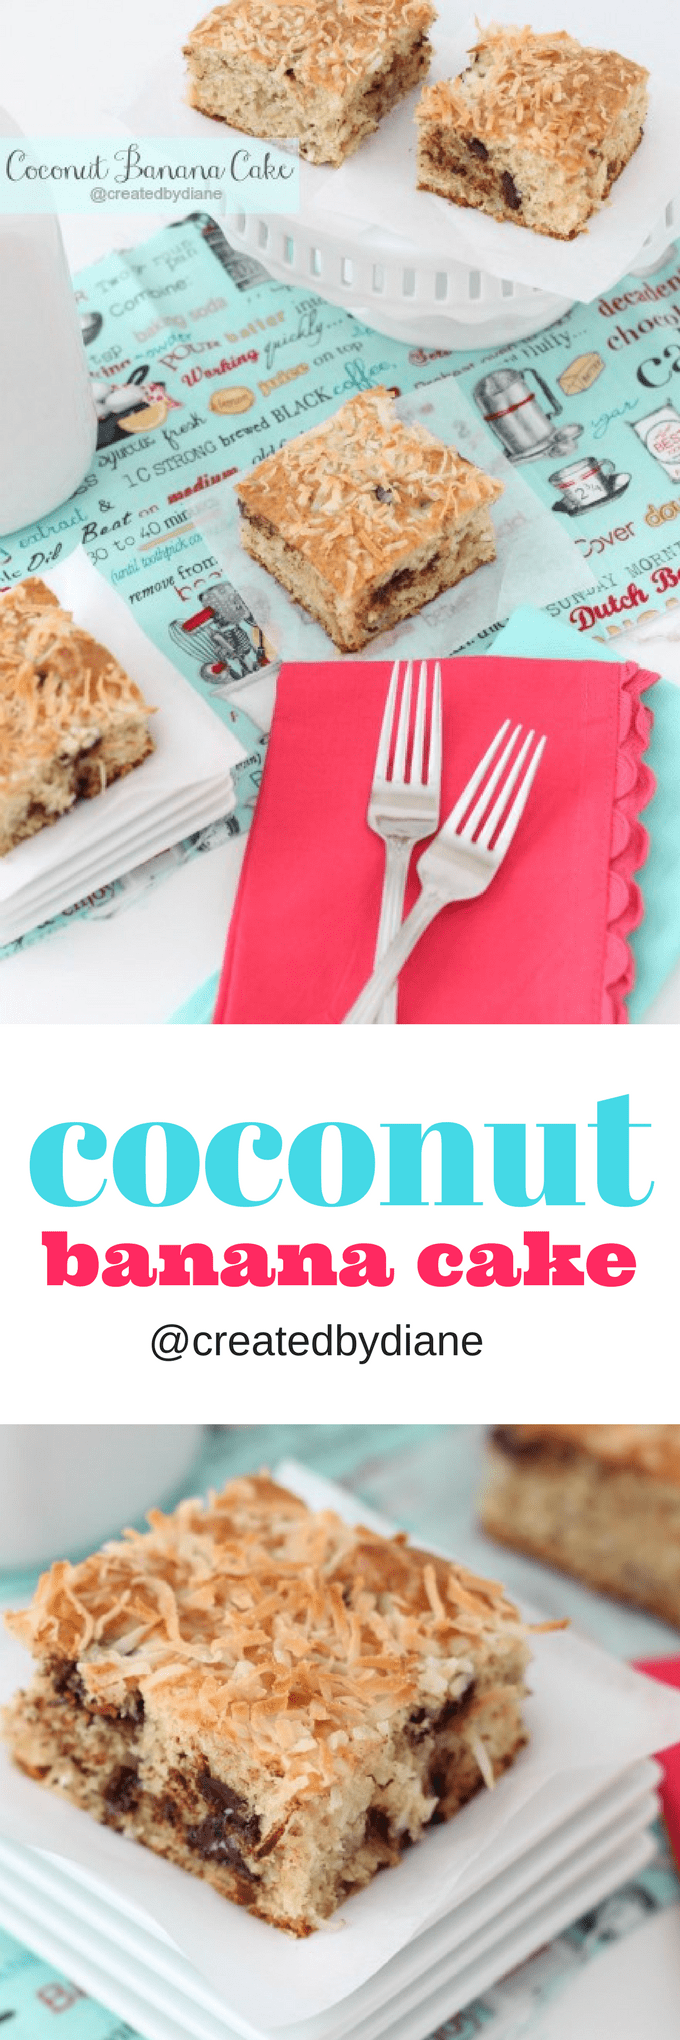 coconut banana cake recipe